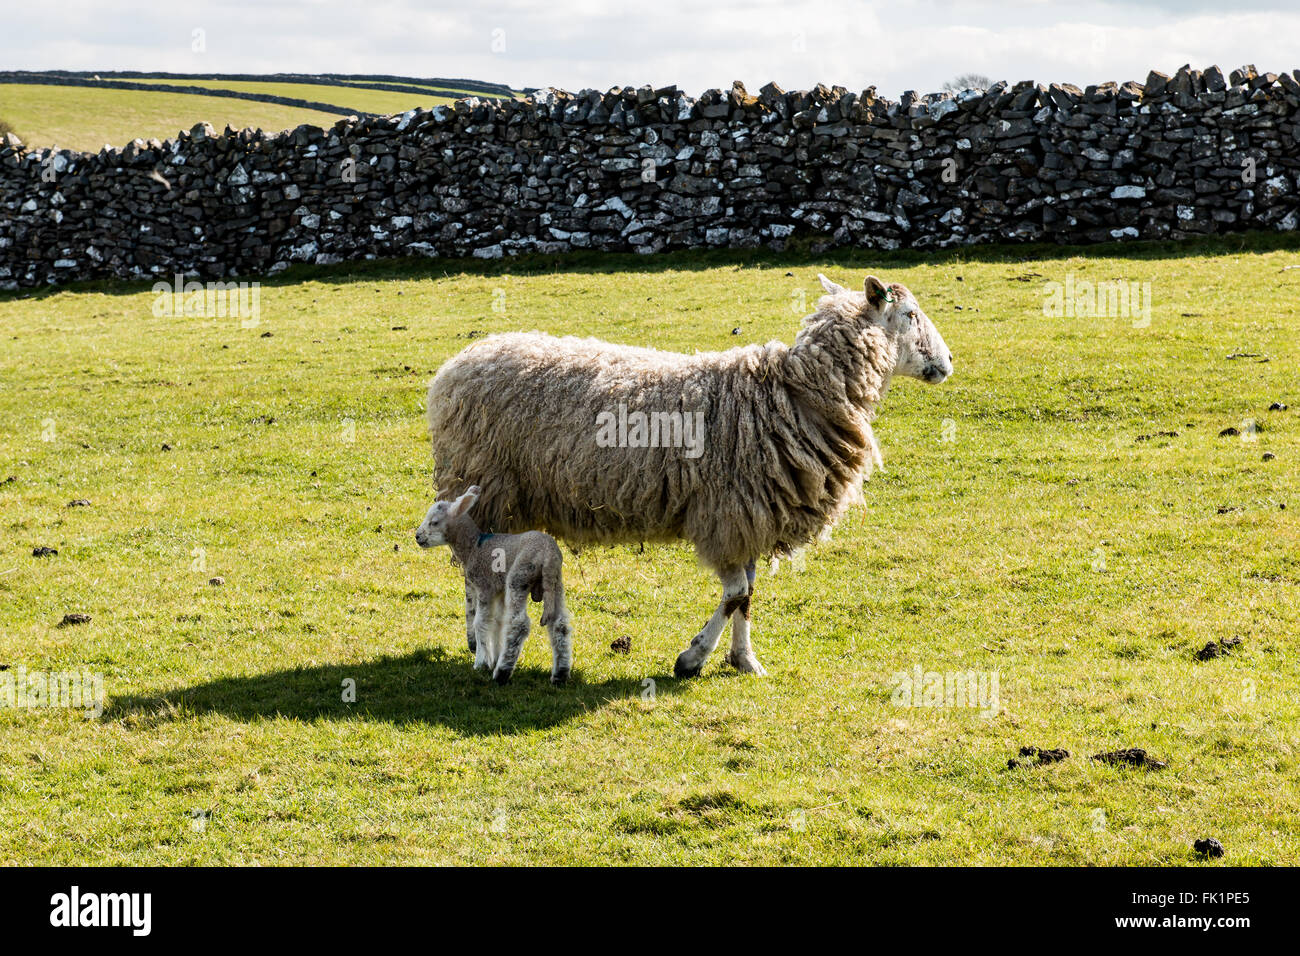 sheep ewe lamb in field Derbyshire green field stone wall sunny part cloud sky - Stock Image